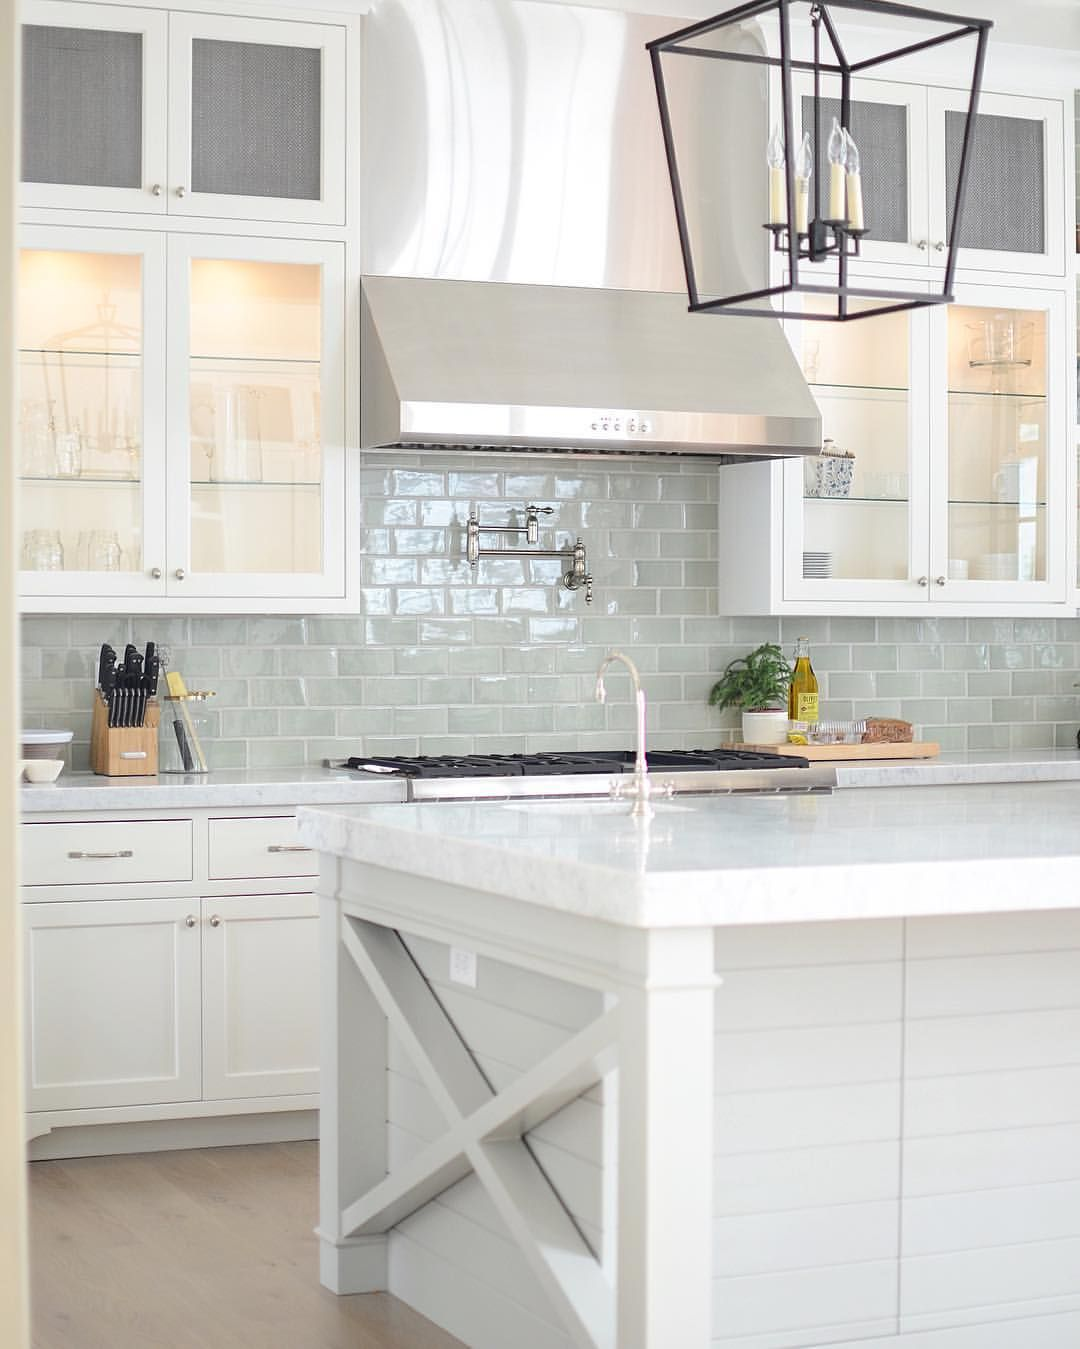 bright white kitchen with pale blue subway tile backsplash